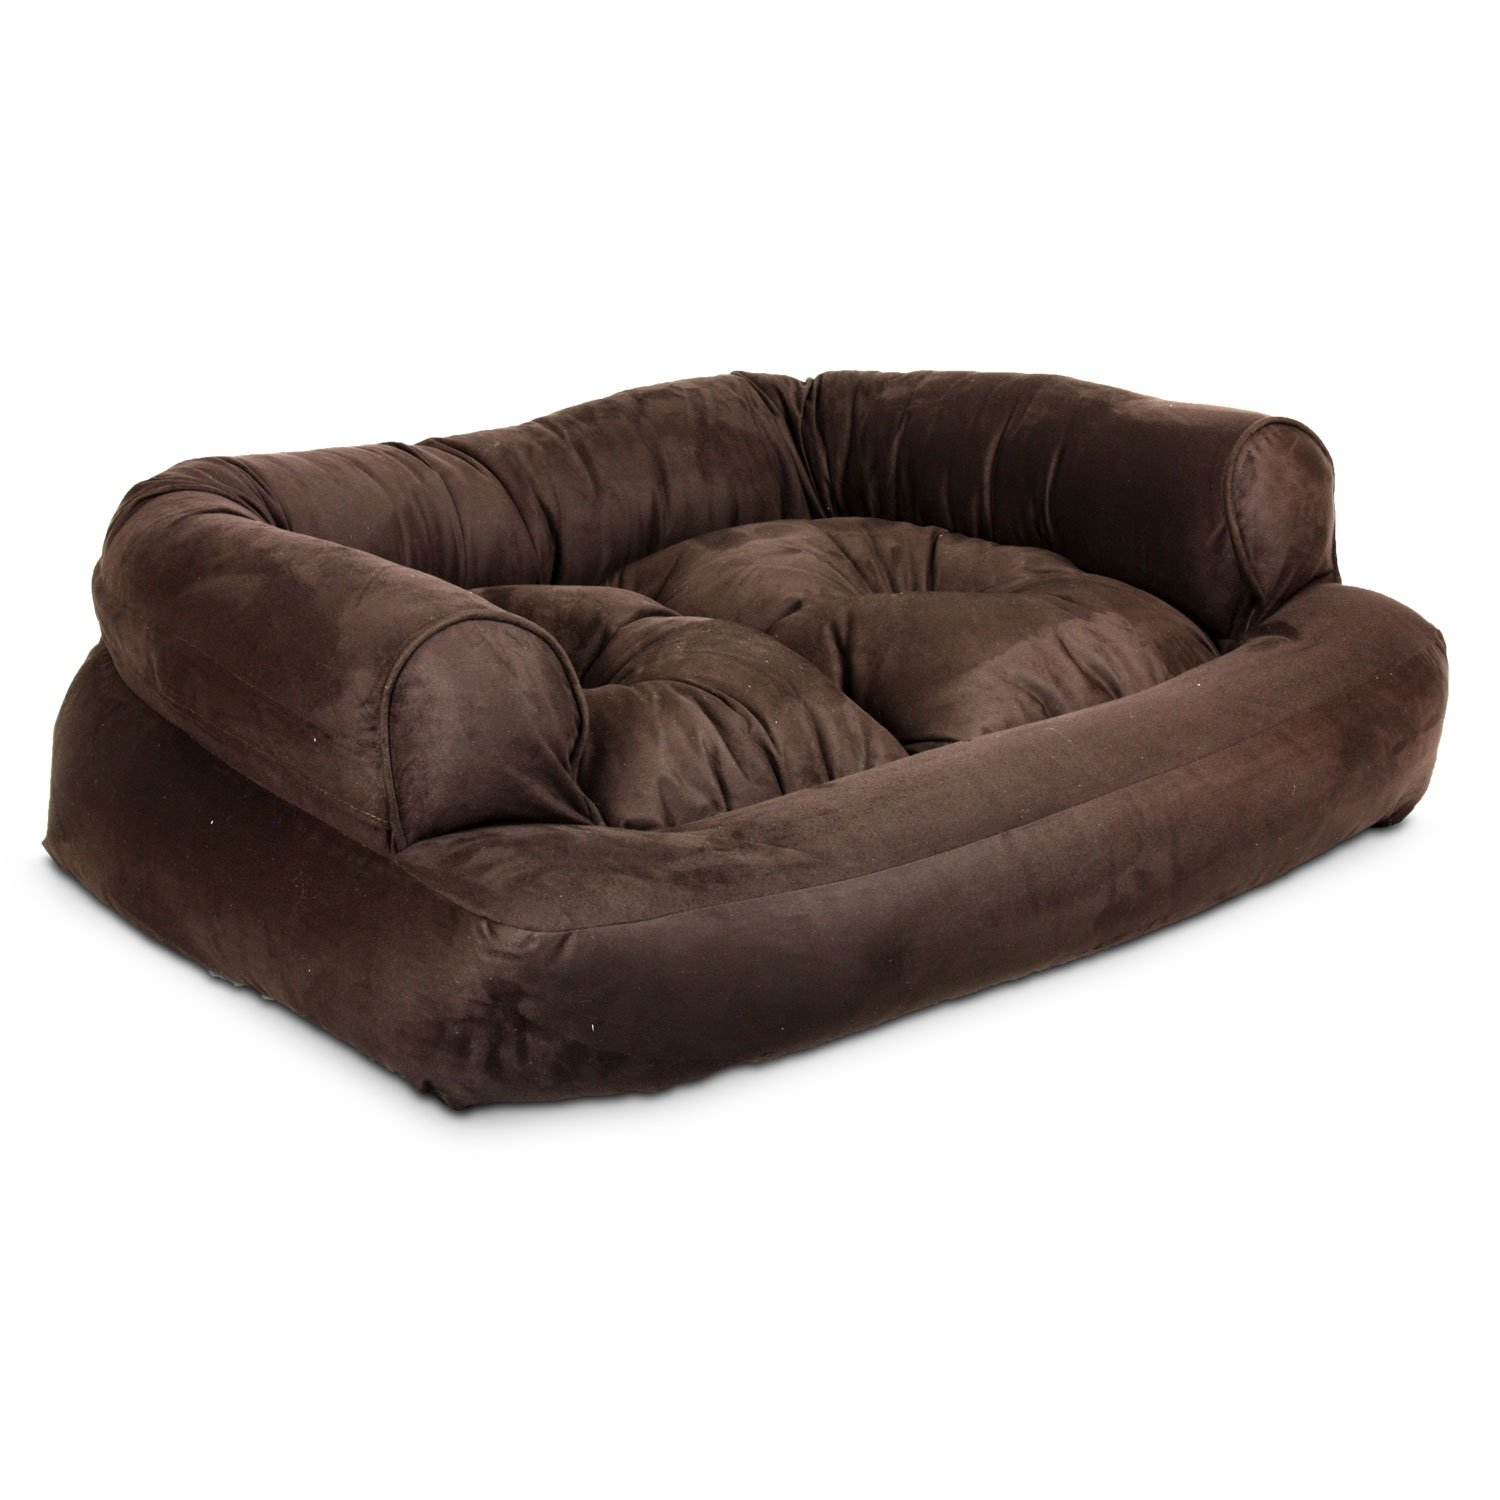 Amazon.com : Snoozer Overstuffed Luxury Pet Sofa, Small, Hot Fudge : Pet  Beds : Pet Supplies